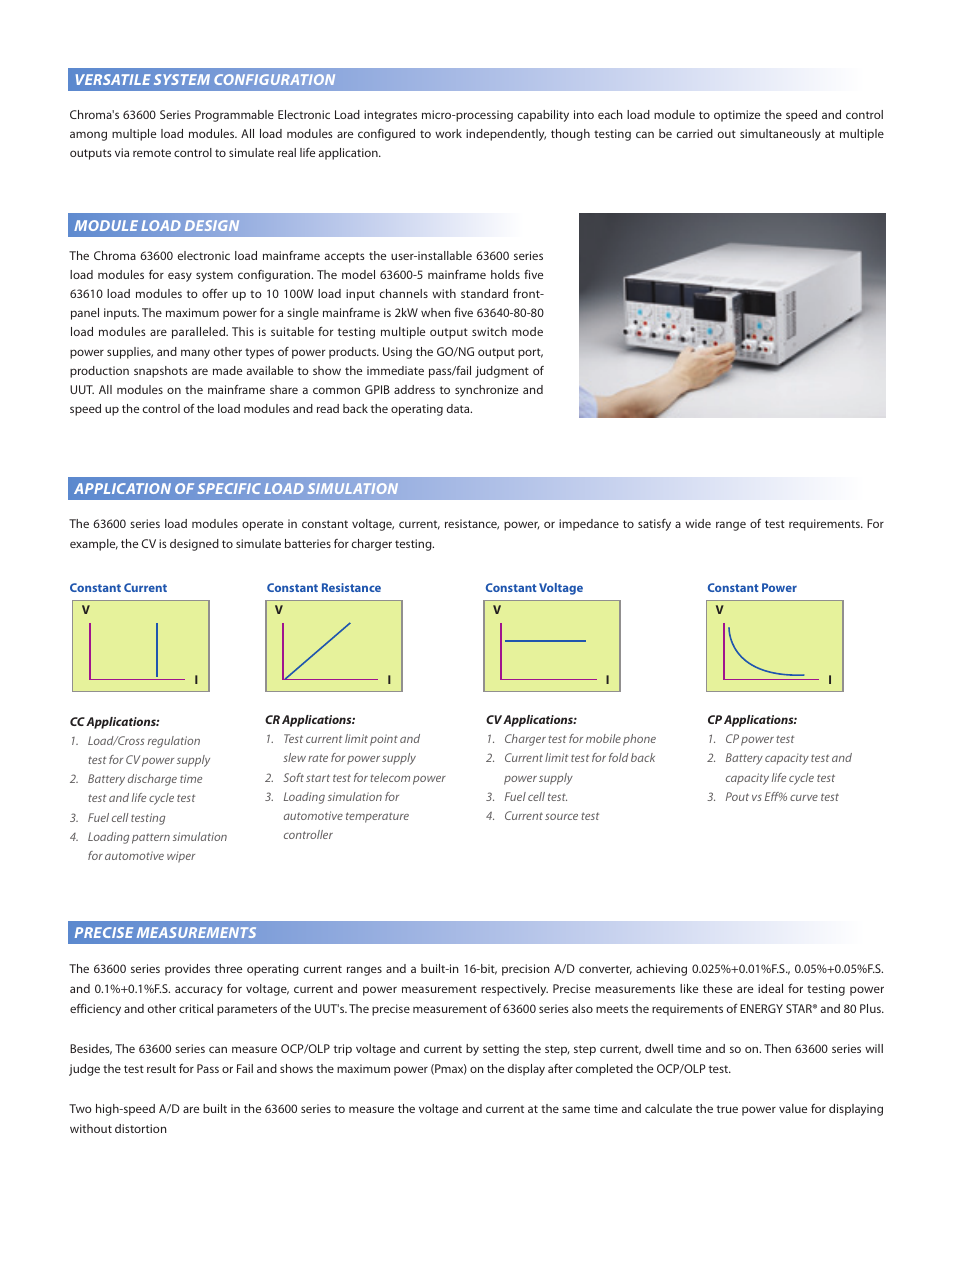 Precise Measurements Atec Chroma 63600 Series User Manual Page 3 Constant Current Sink Work 2 How Does A 12